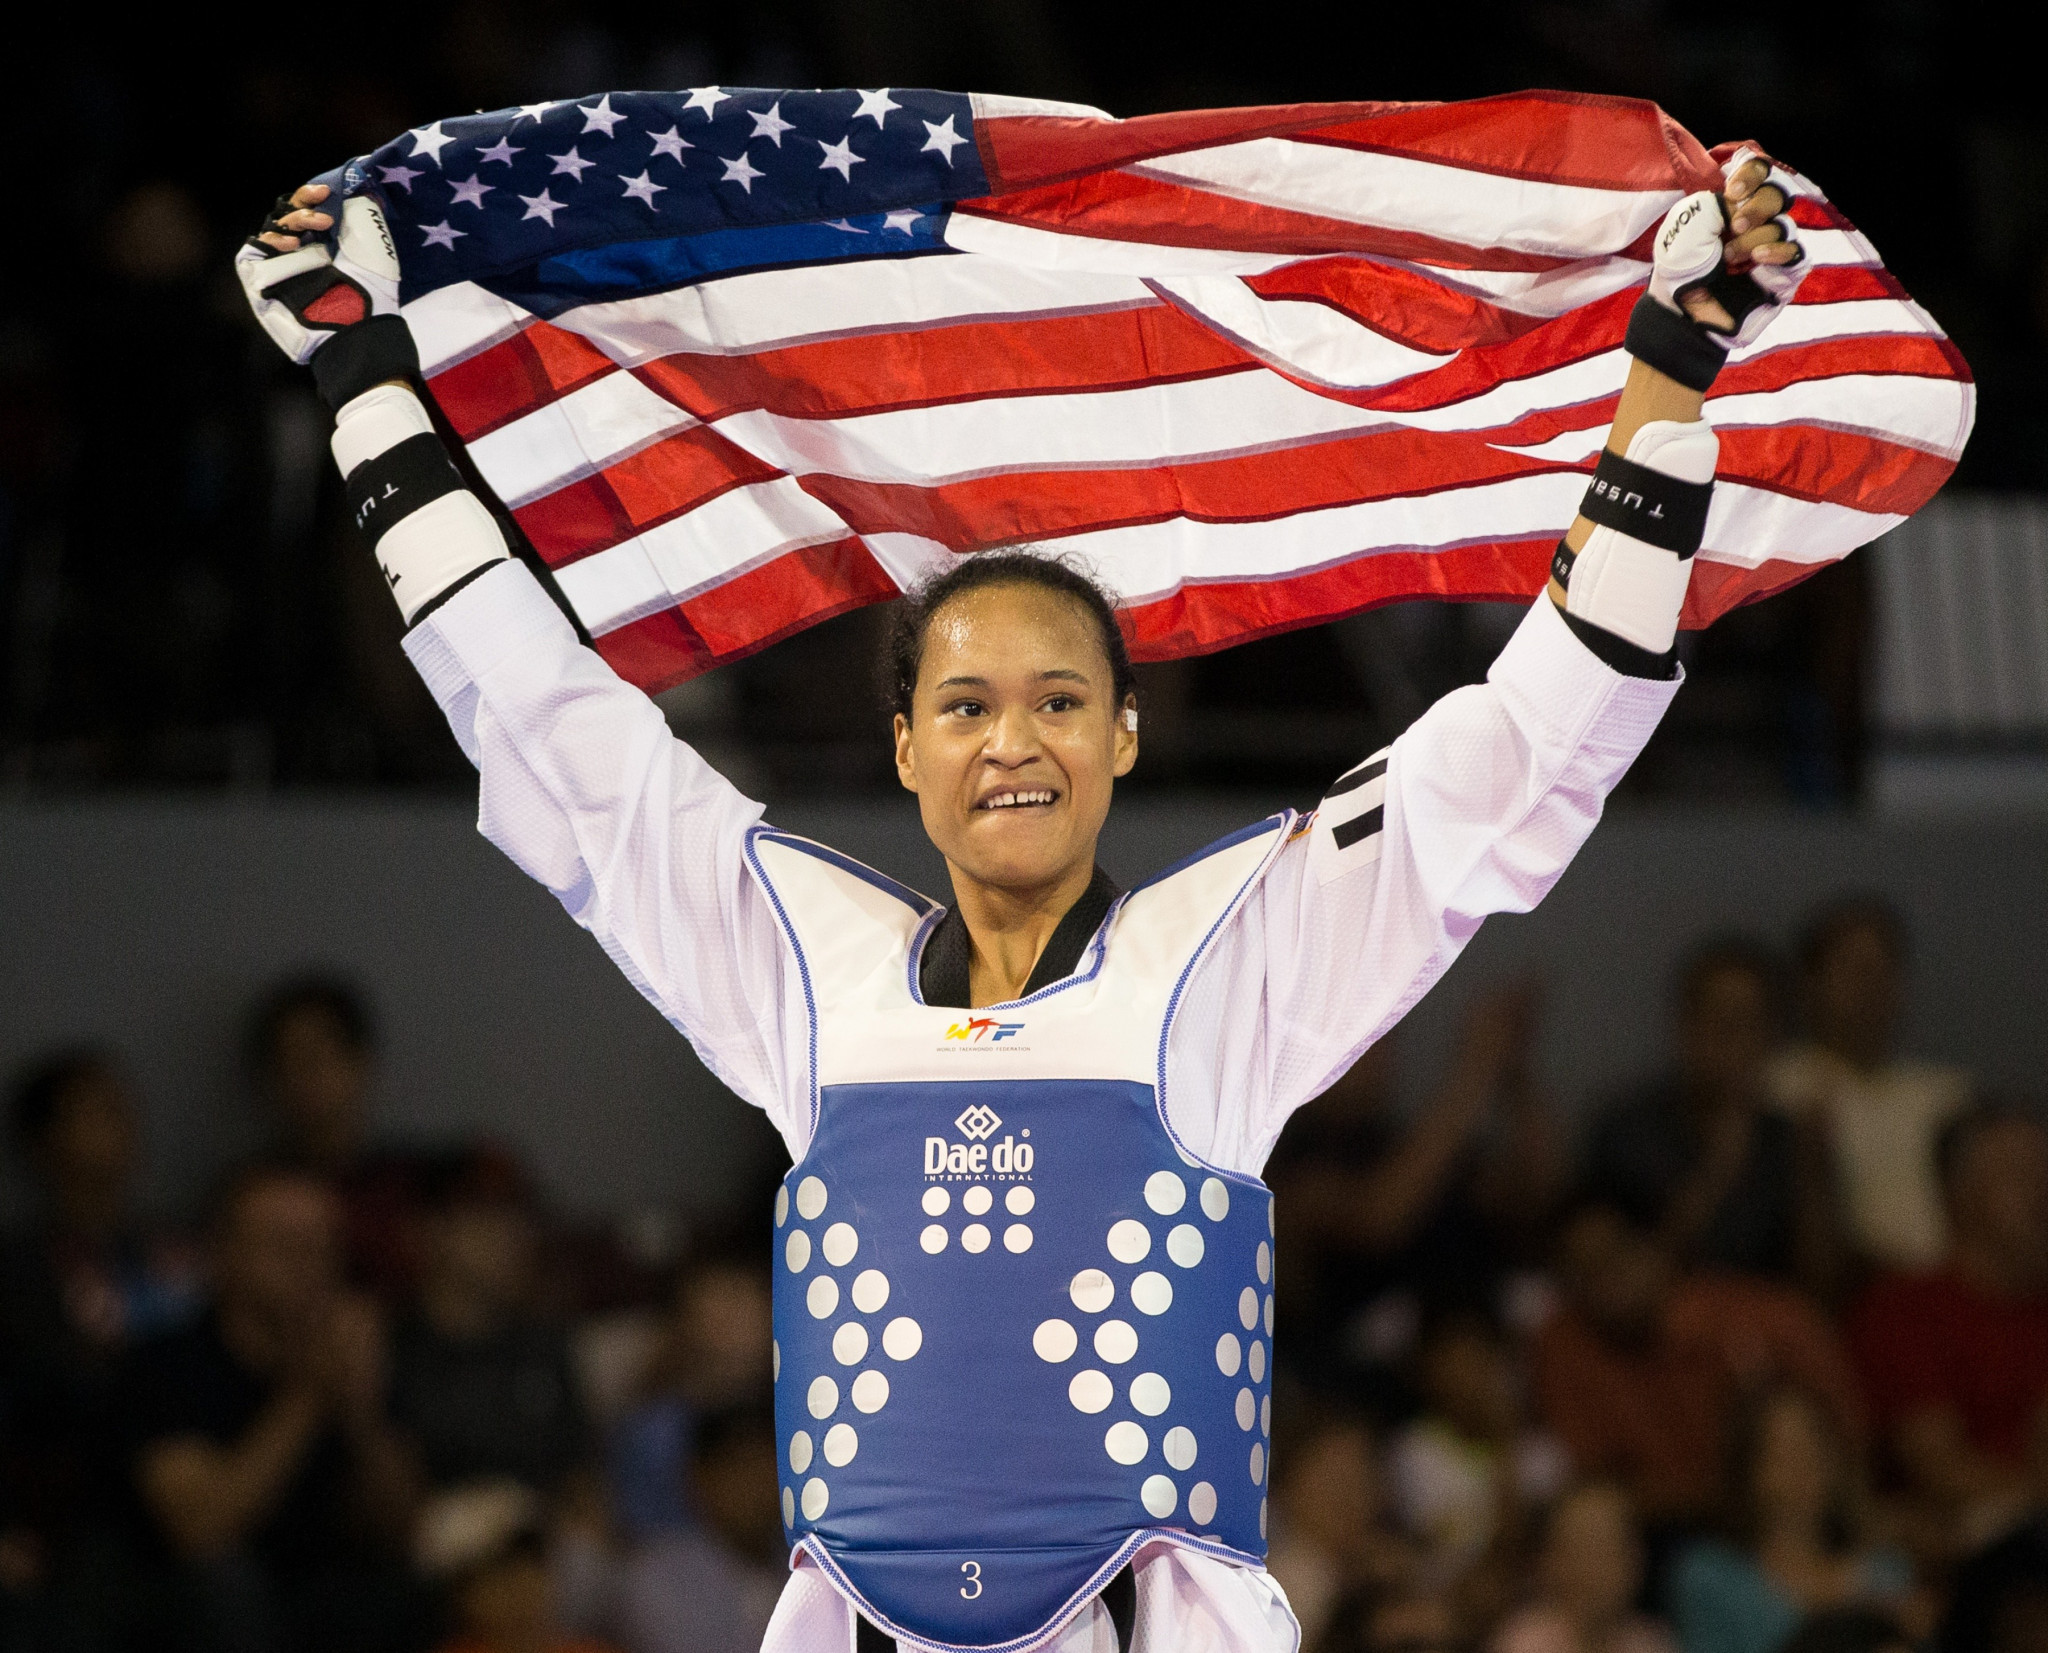 Paige McPherson is one of two American taekwondo qualifiers for Tokyo 2020 ©Getty Images